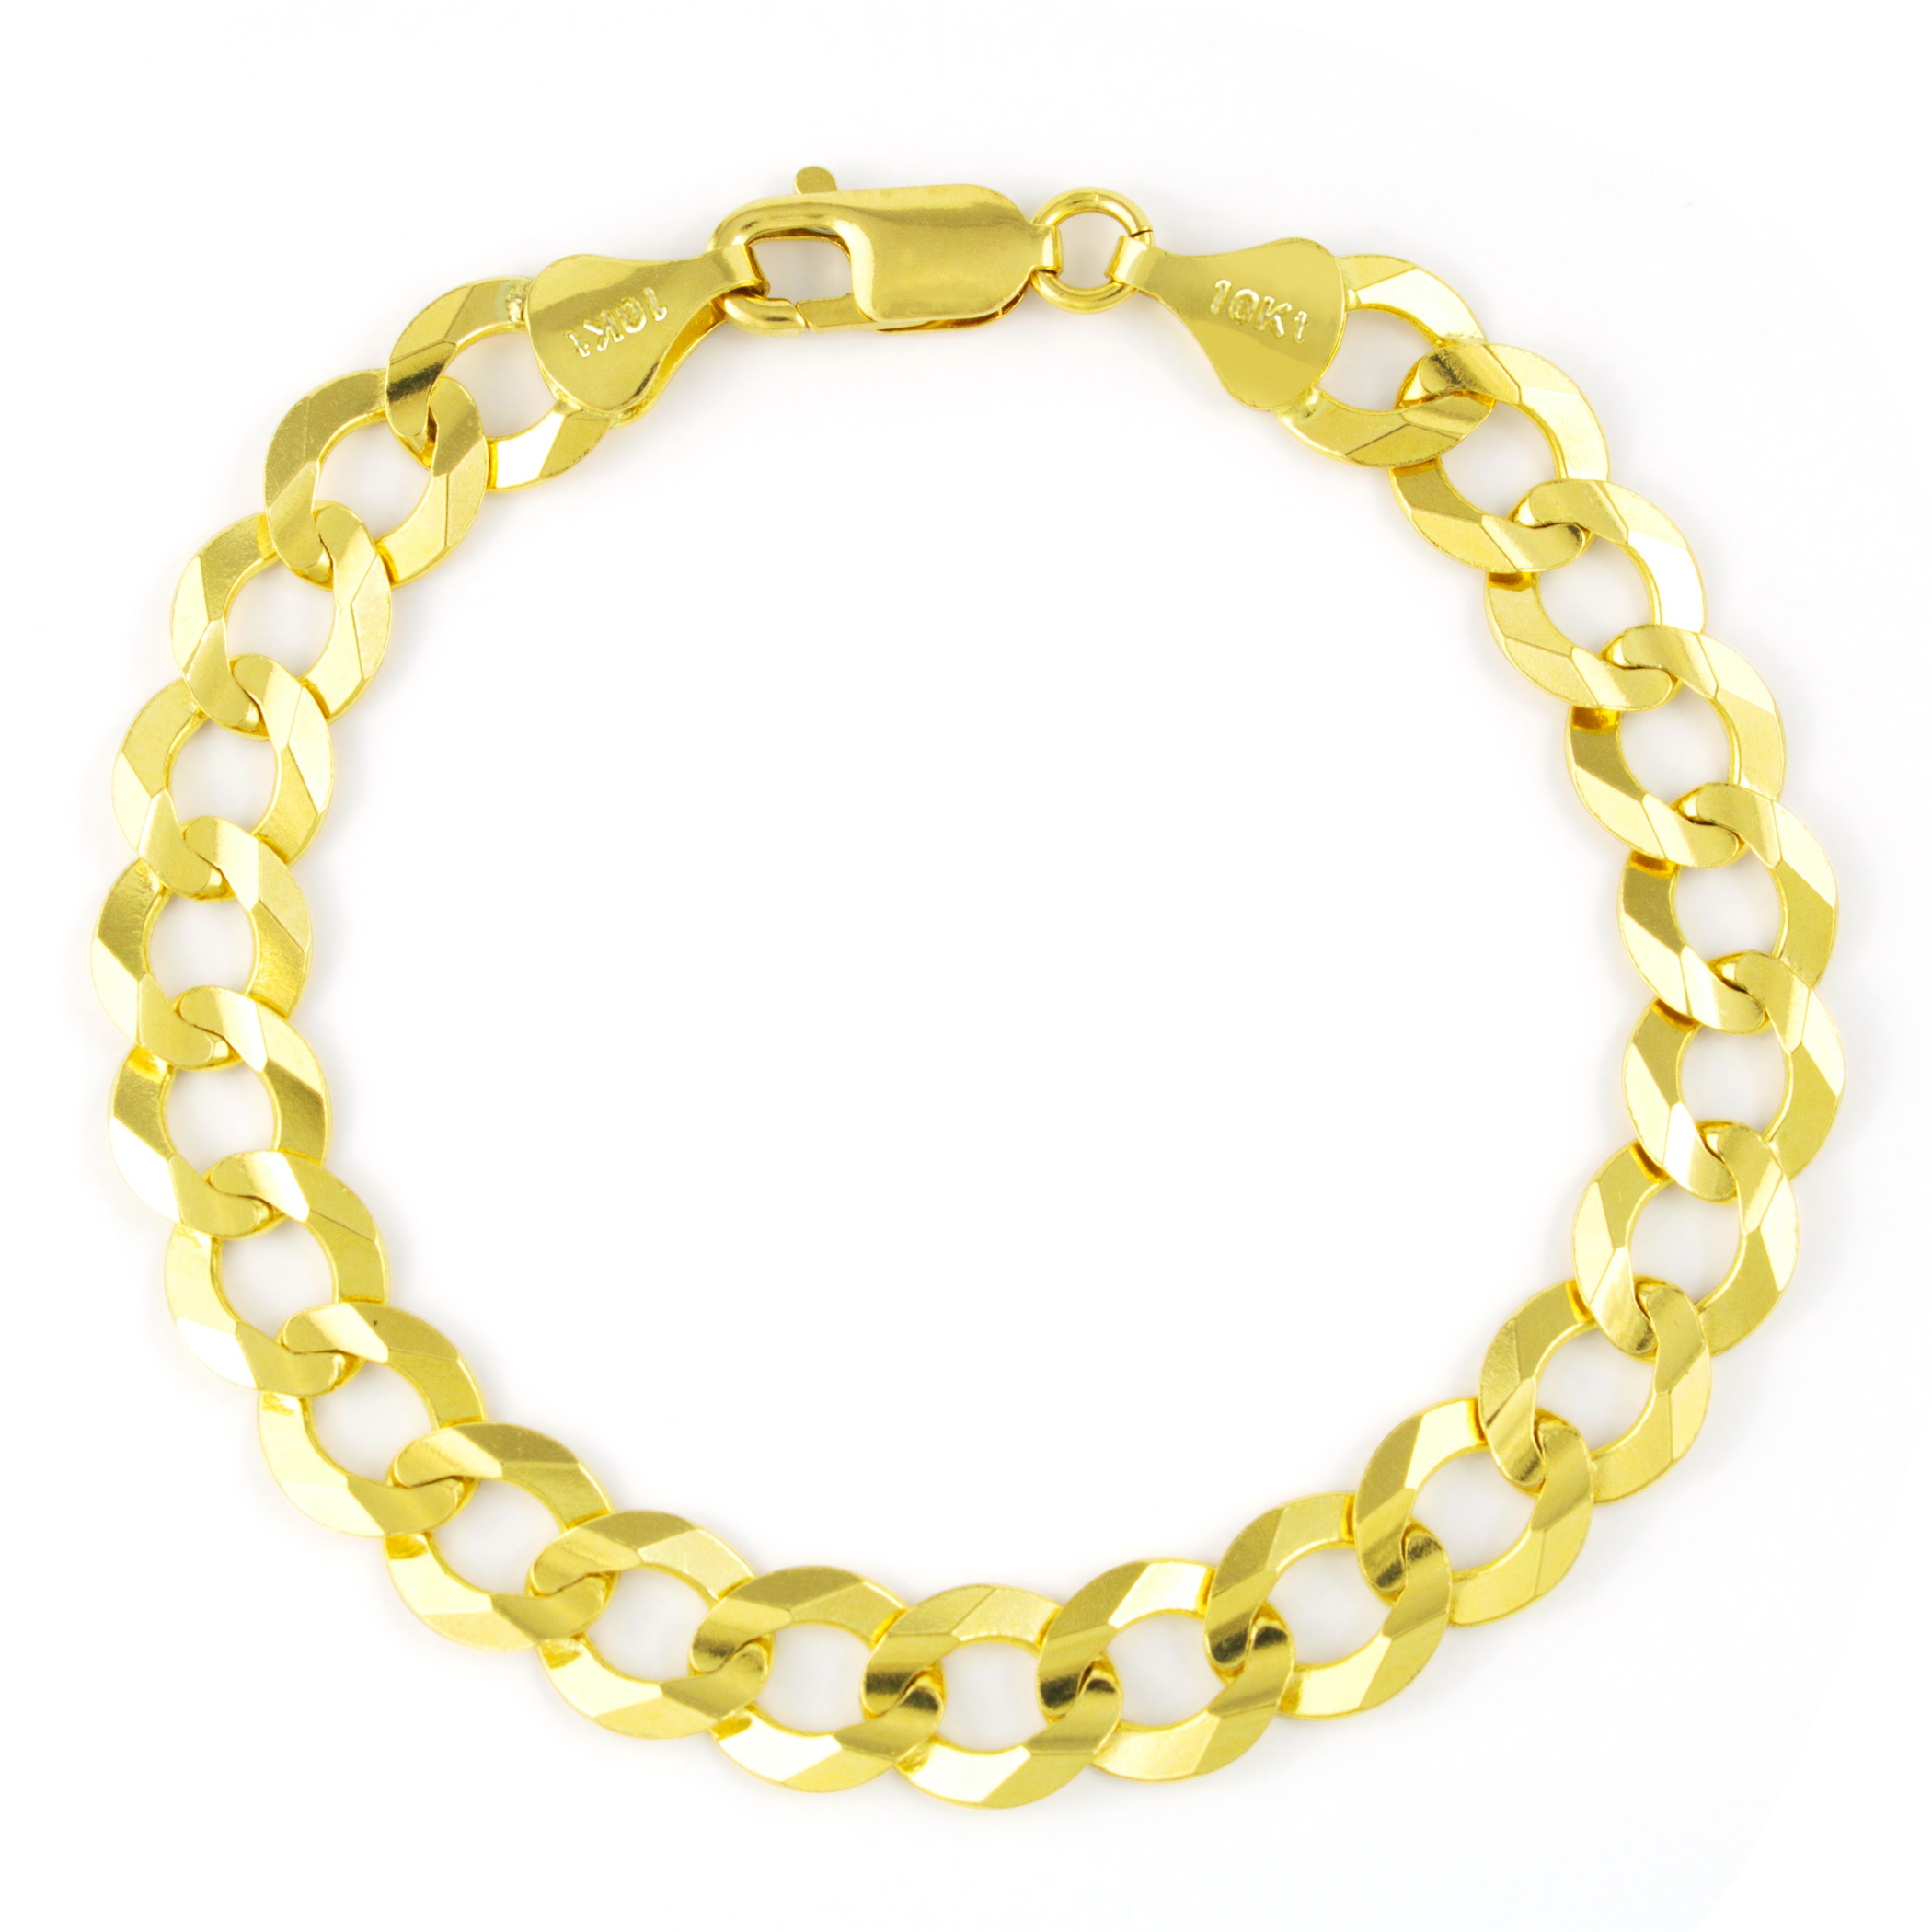 62d772db7fb6c Details about Mens 10K Yellow Gold Solid 10mm Italy Cuban Curb Chain Link  Bracelet 8